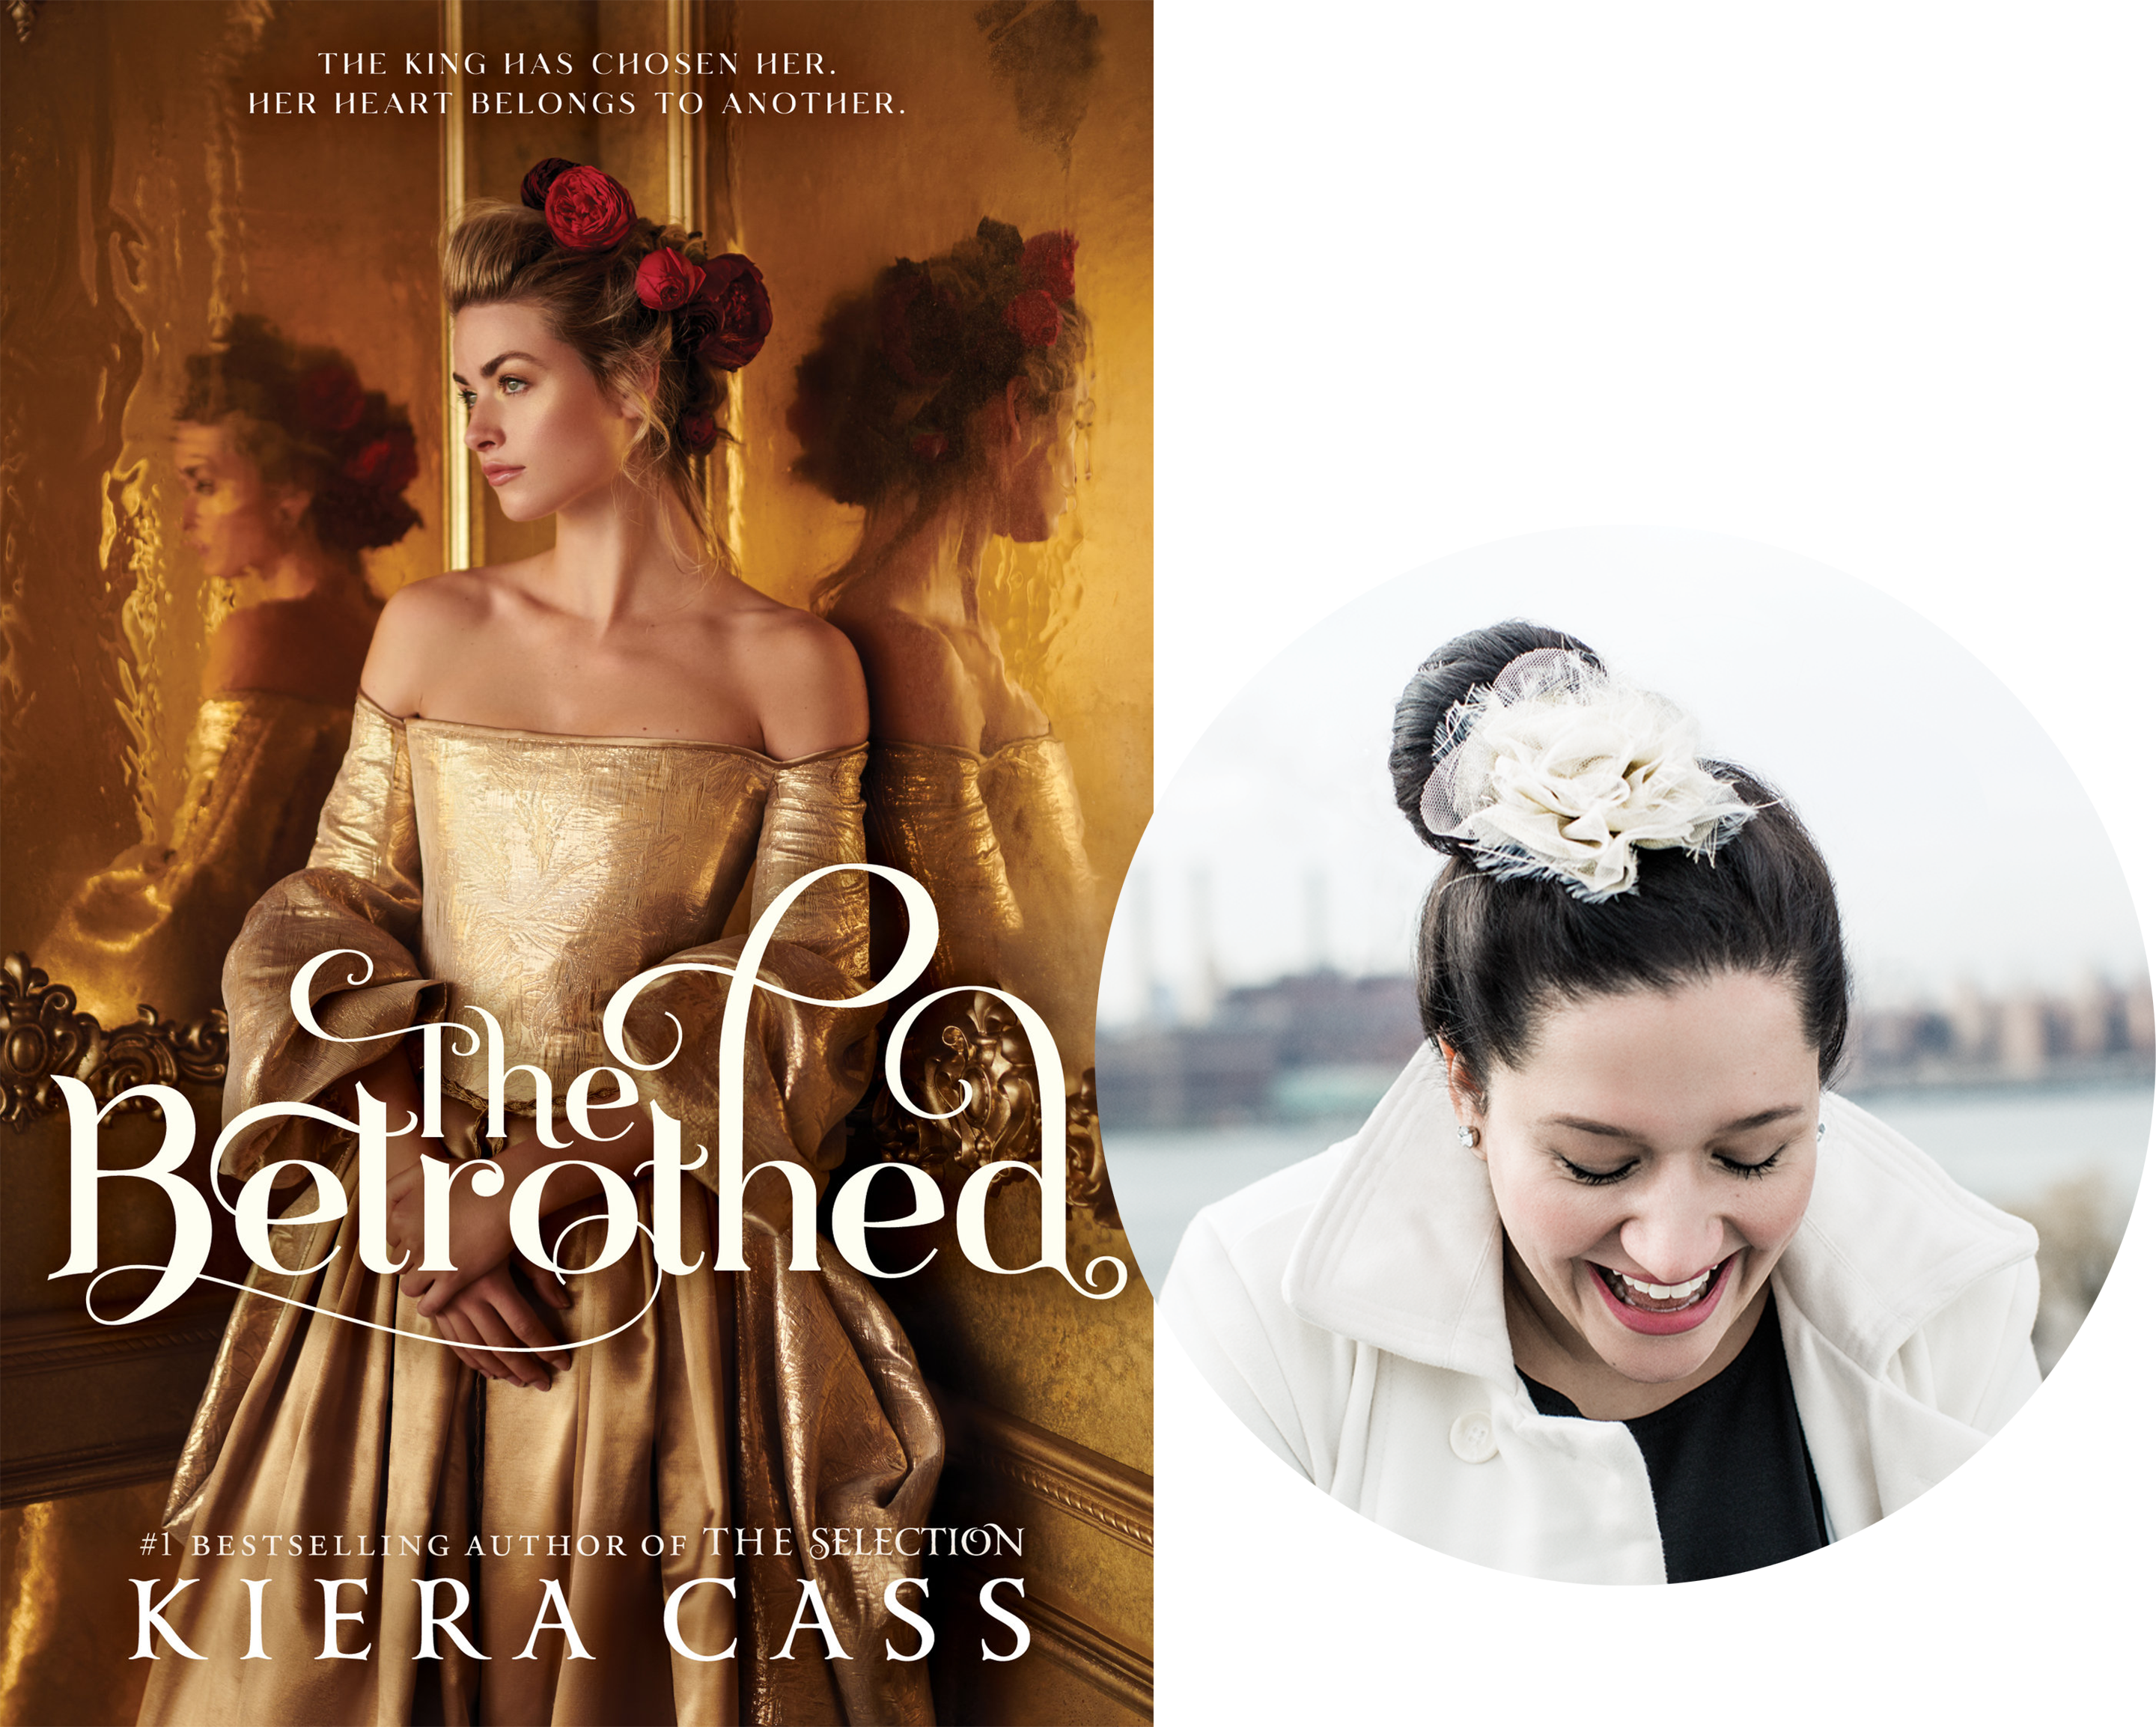 Kiera Cass Announces New Book: The Betrothed